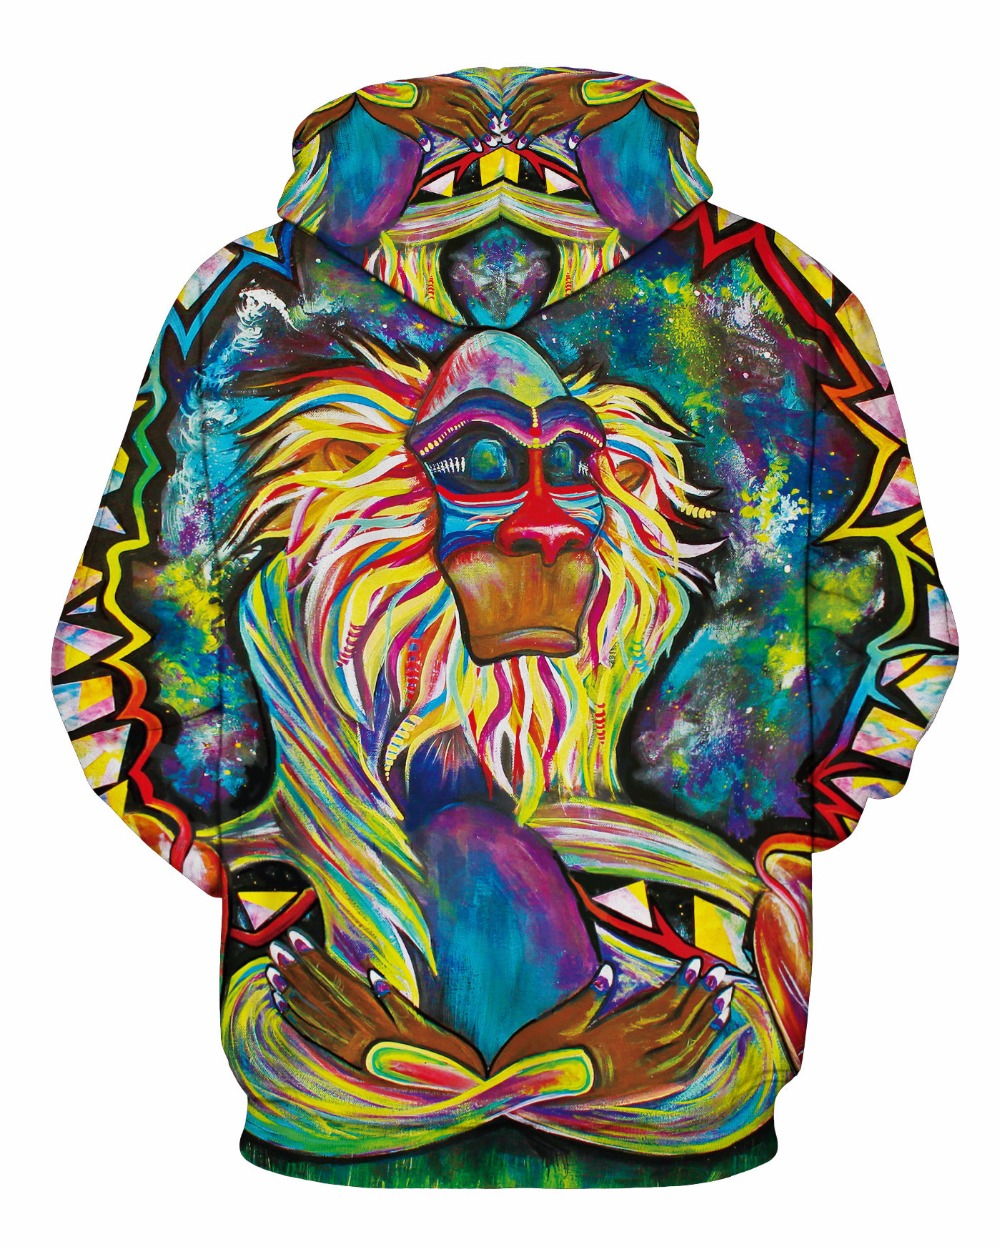 Wolf Printed Hoodies Men 3D Hoodies Brand Sweatshirts Boy Jackets Quality Pullover Fashion Tracksuits Animal Street wear Out Coat 123